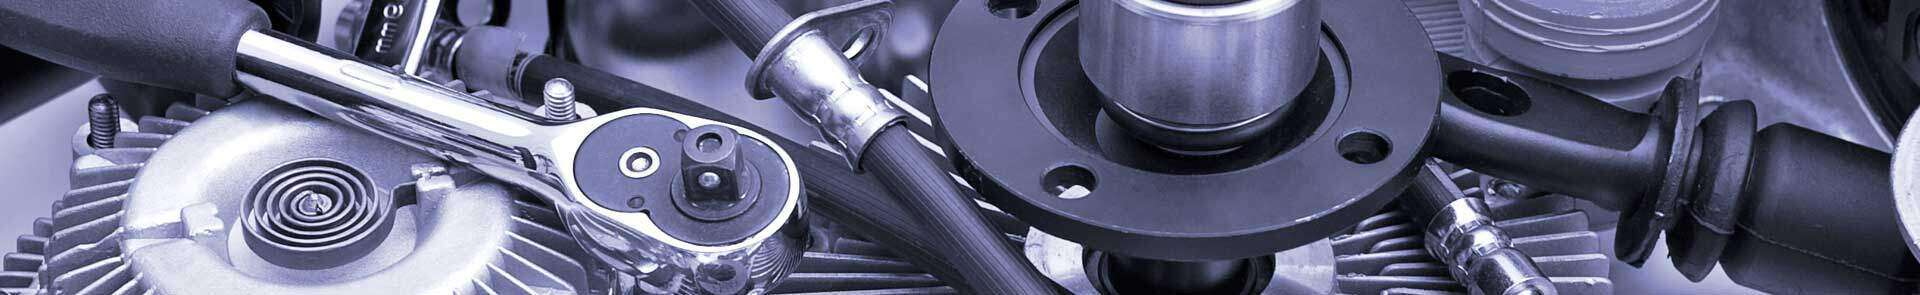 image of auto parts for auto parts software